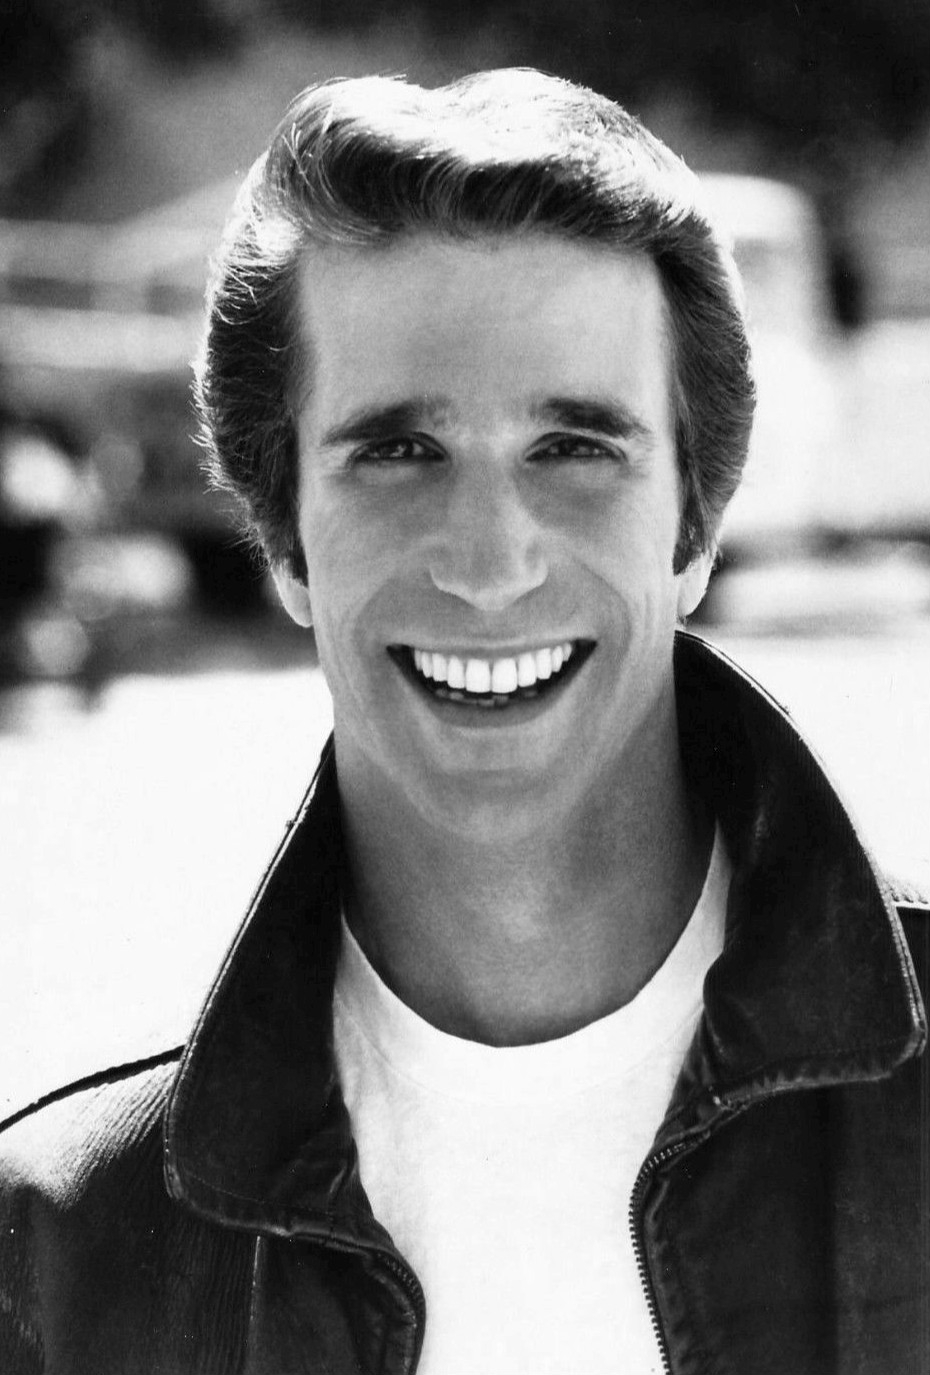 henry winkler twitterhenry winkler friends, henry winkler height, henry winkler, henry winkler net worth, henry winkler books, happy days henry winkler, henry winkler biography, henry winkler imdb, henry winkler movies, henry winkler dead, henry winkler gay, henry winkler wife, henry winkler christmas movie, henry winkler twitter, henry winkler reverse mortgage, henry winkler macgyver, henry winkler dyslexia, henry winkler arrested development, henry winkler the fonz happy days, henry winkler house